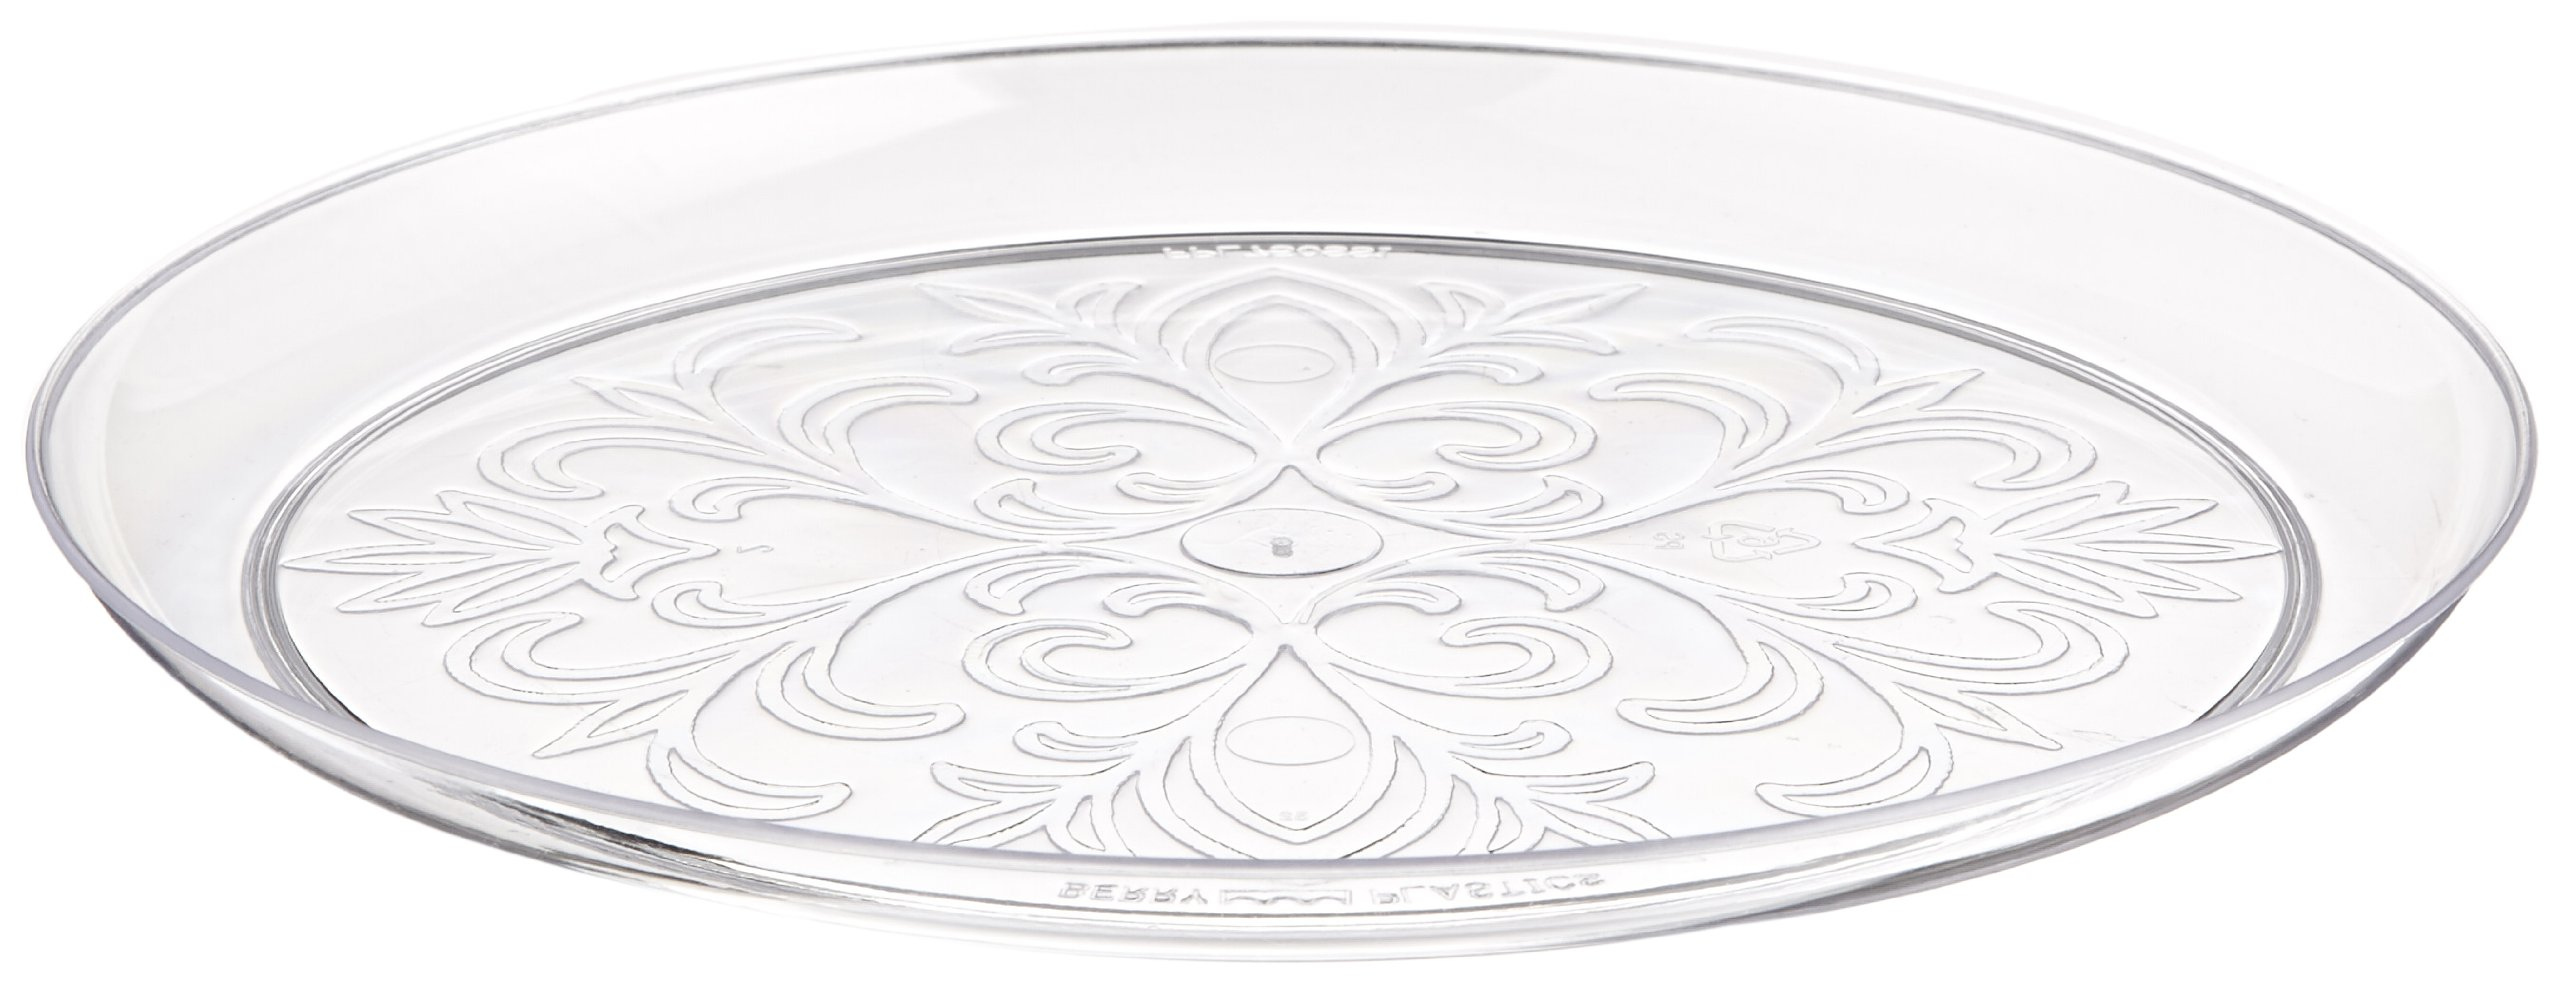 ScrollWare Rigid Plastic Plate, 7.5-Inch Diameter, Clear (240-Count) by WNA